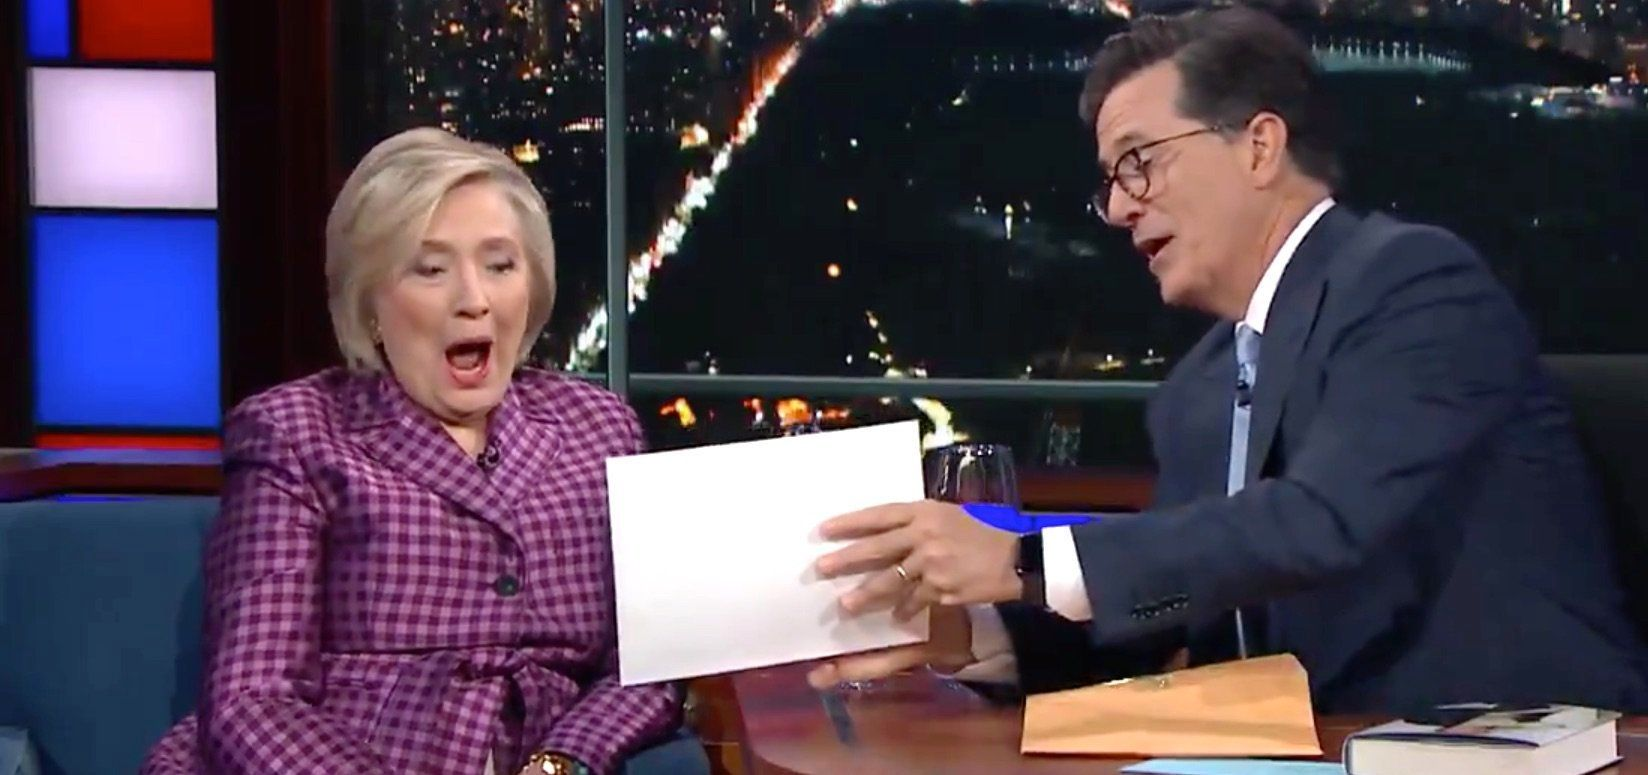 Hillary Clinton sees an unused gag fromStephen Colbert's election night coverage.